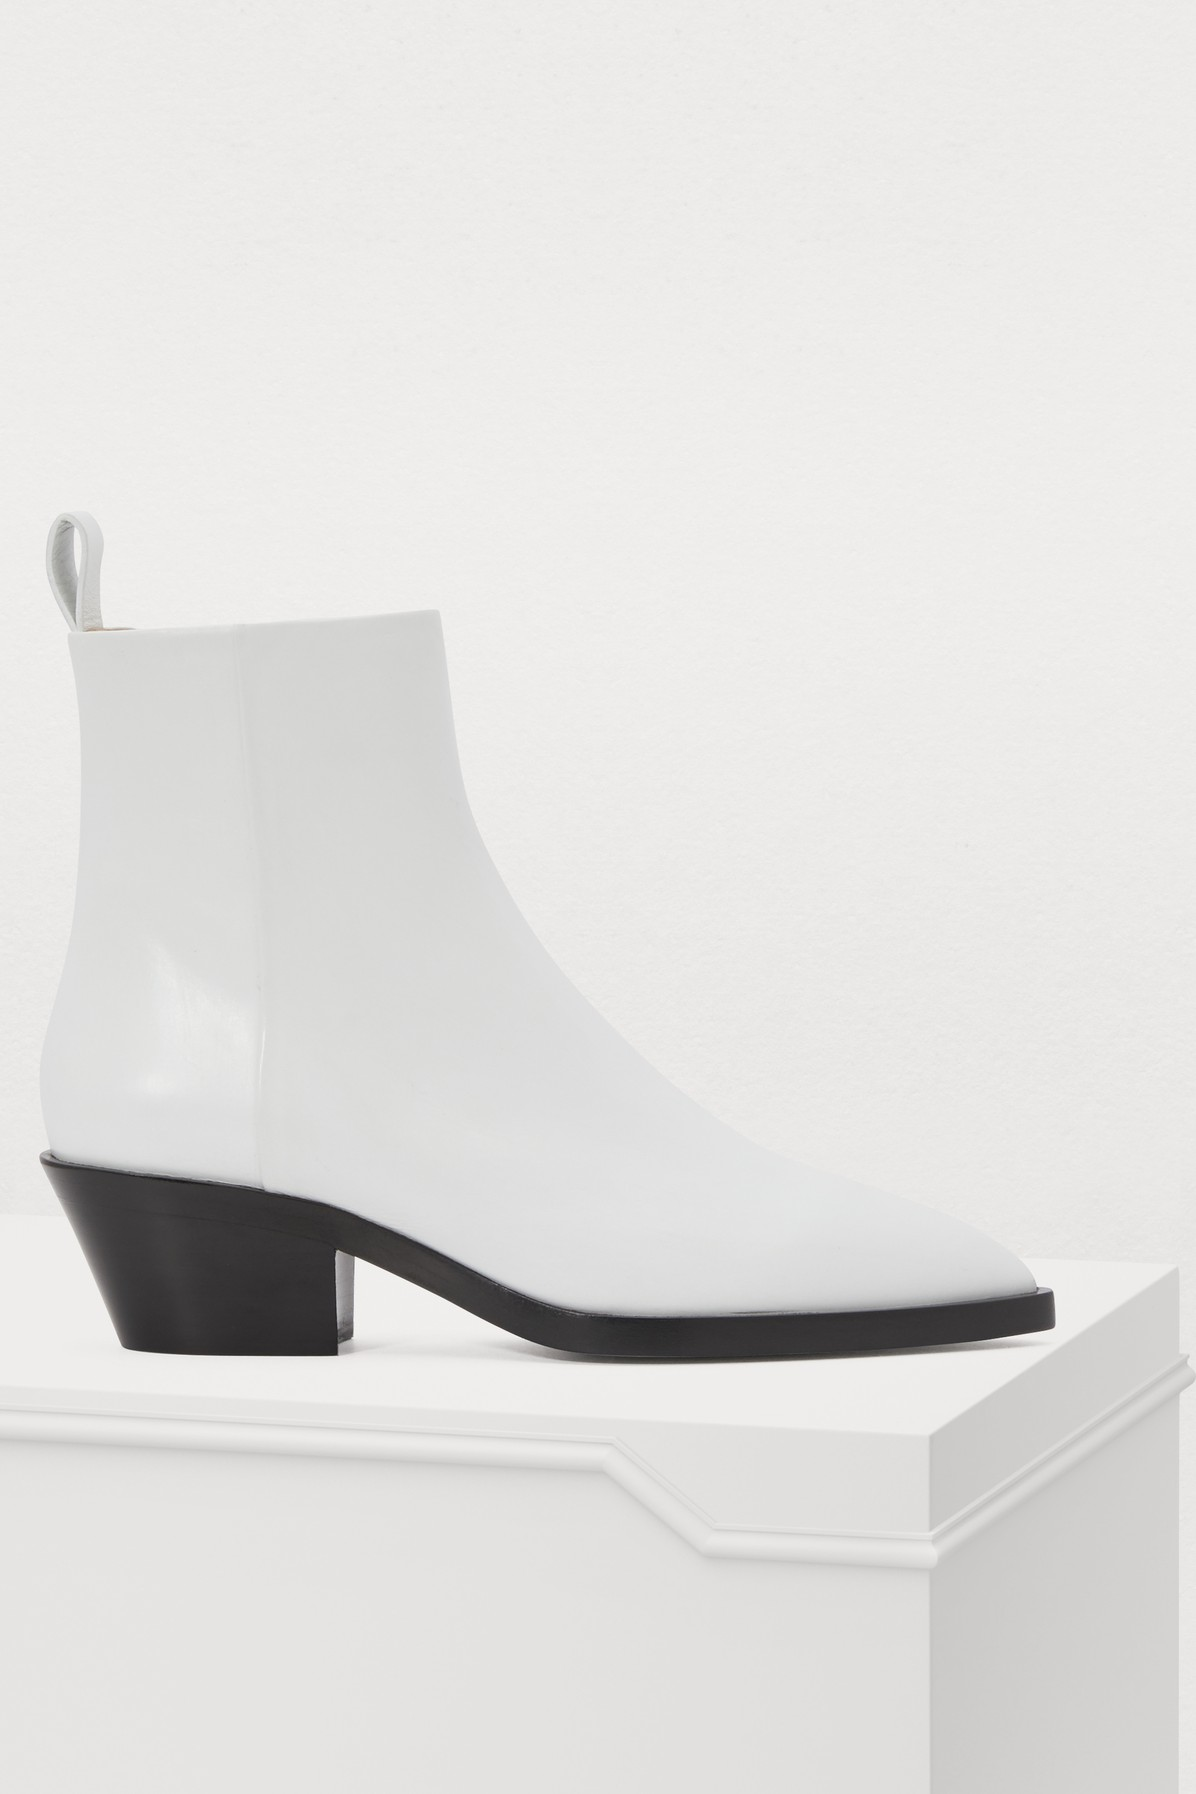 Leather Ankle Boots in White from Jil Sander